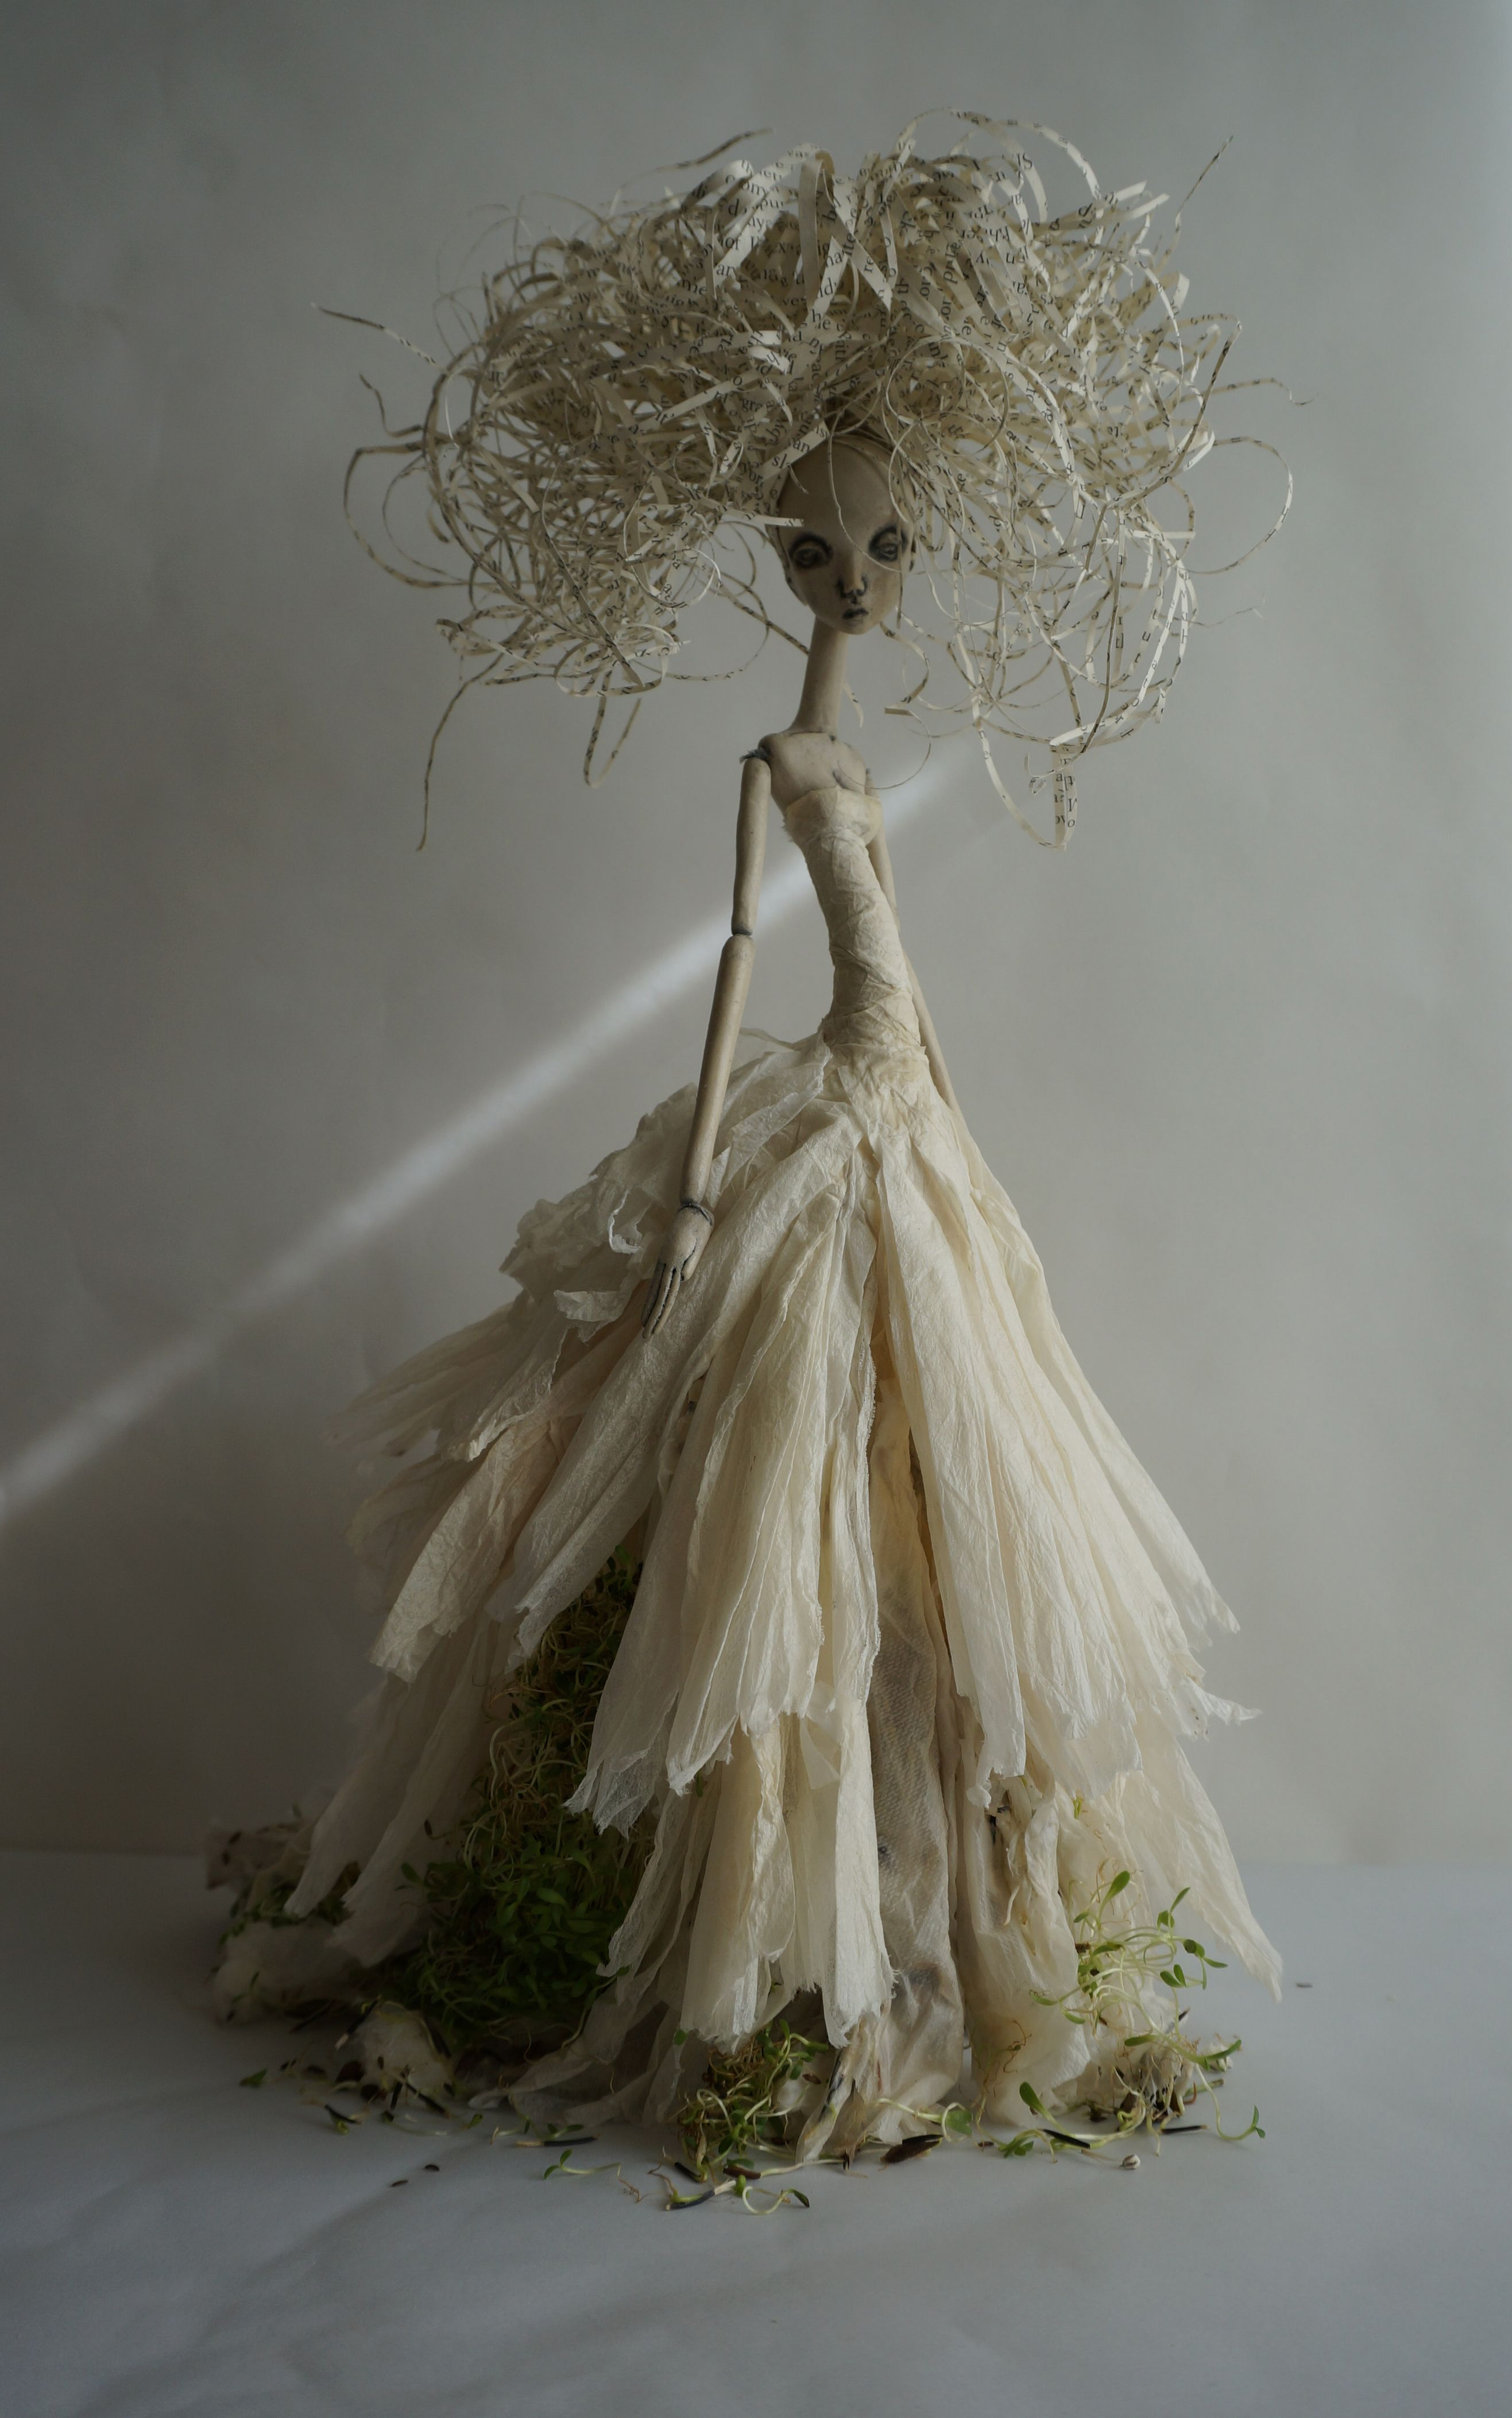 Fantasy | Whimsical | Strange | Mythical | Creative | Creatures | Dolls | Sculptures | Desolate Deidra.. .more sprouts